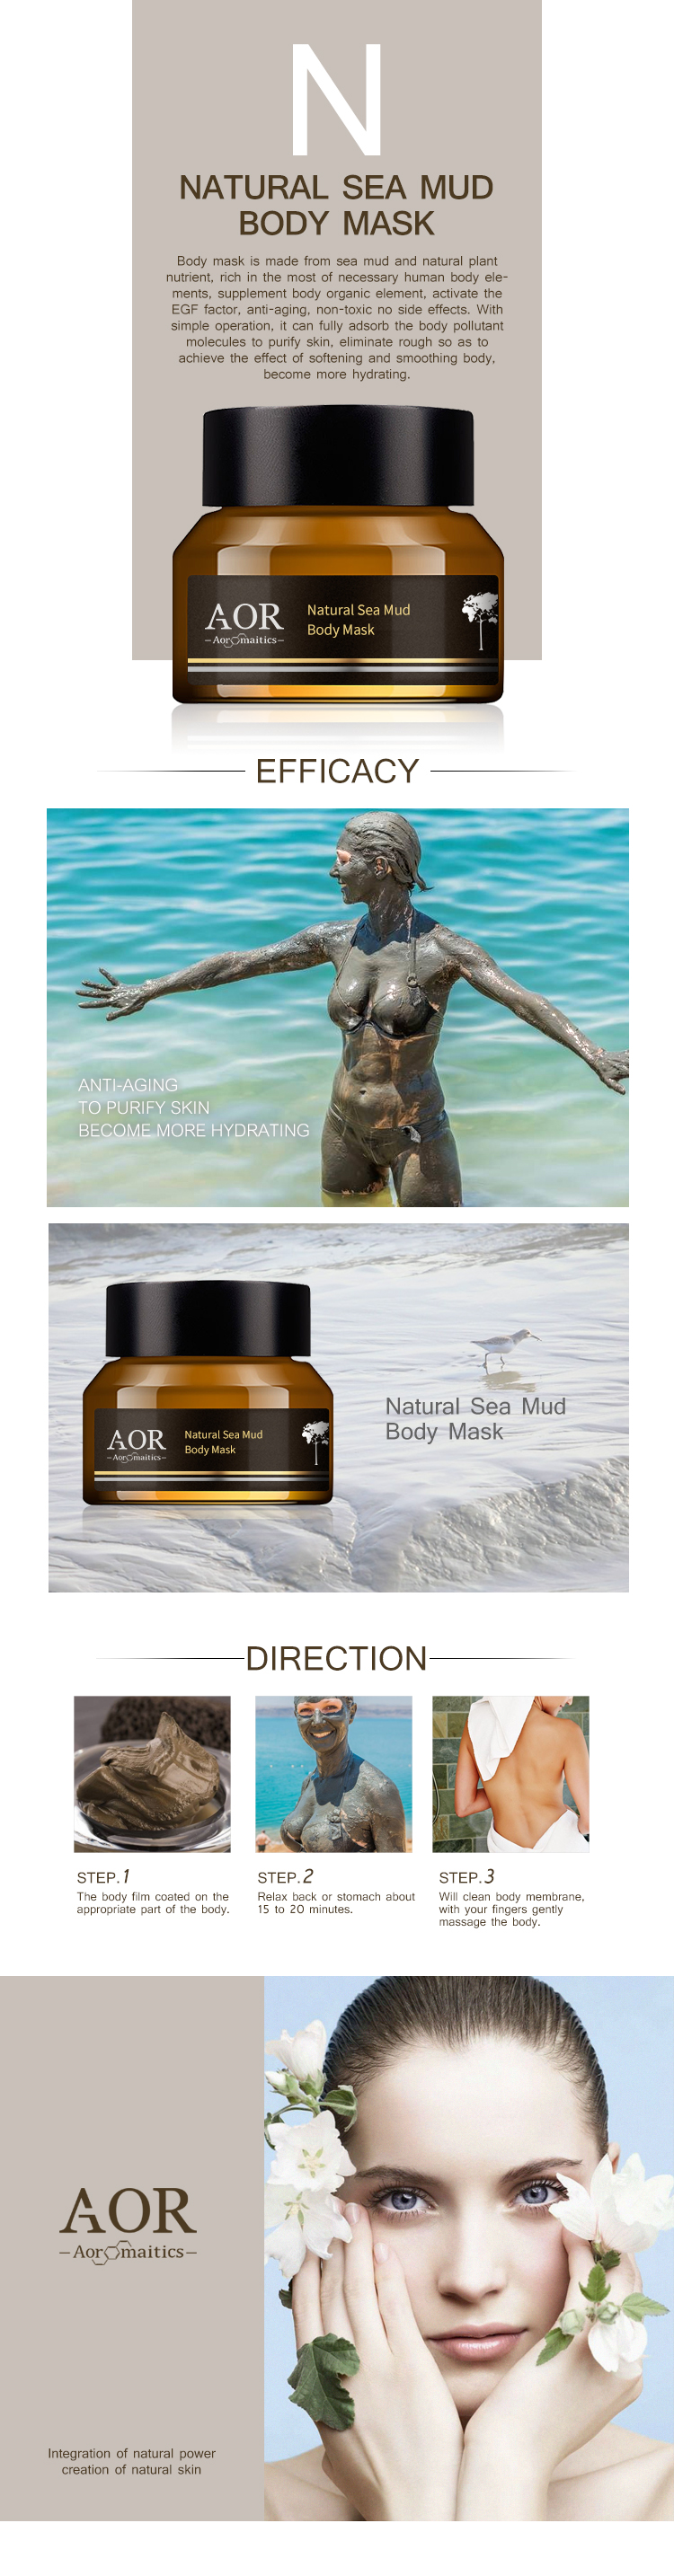 Natural Sea Mud Body regeneration Antiaging Anti-pollution Purifying Smoothing Softening